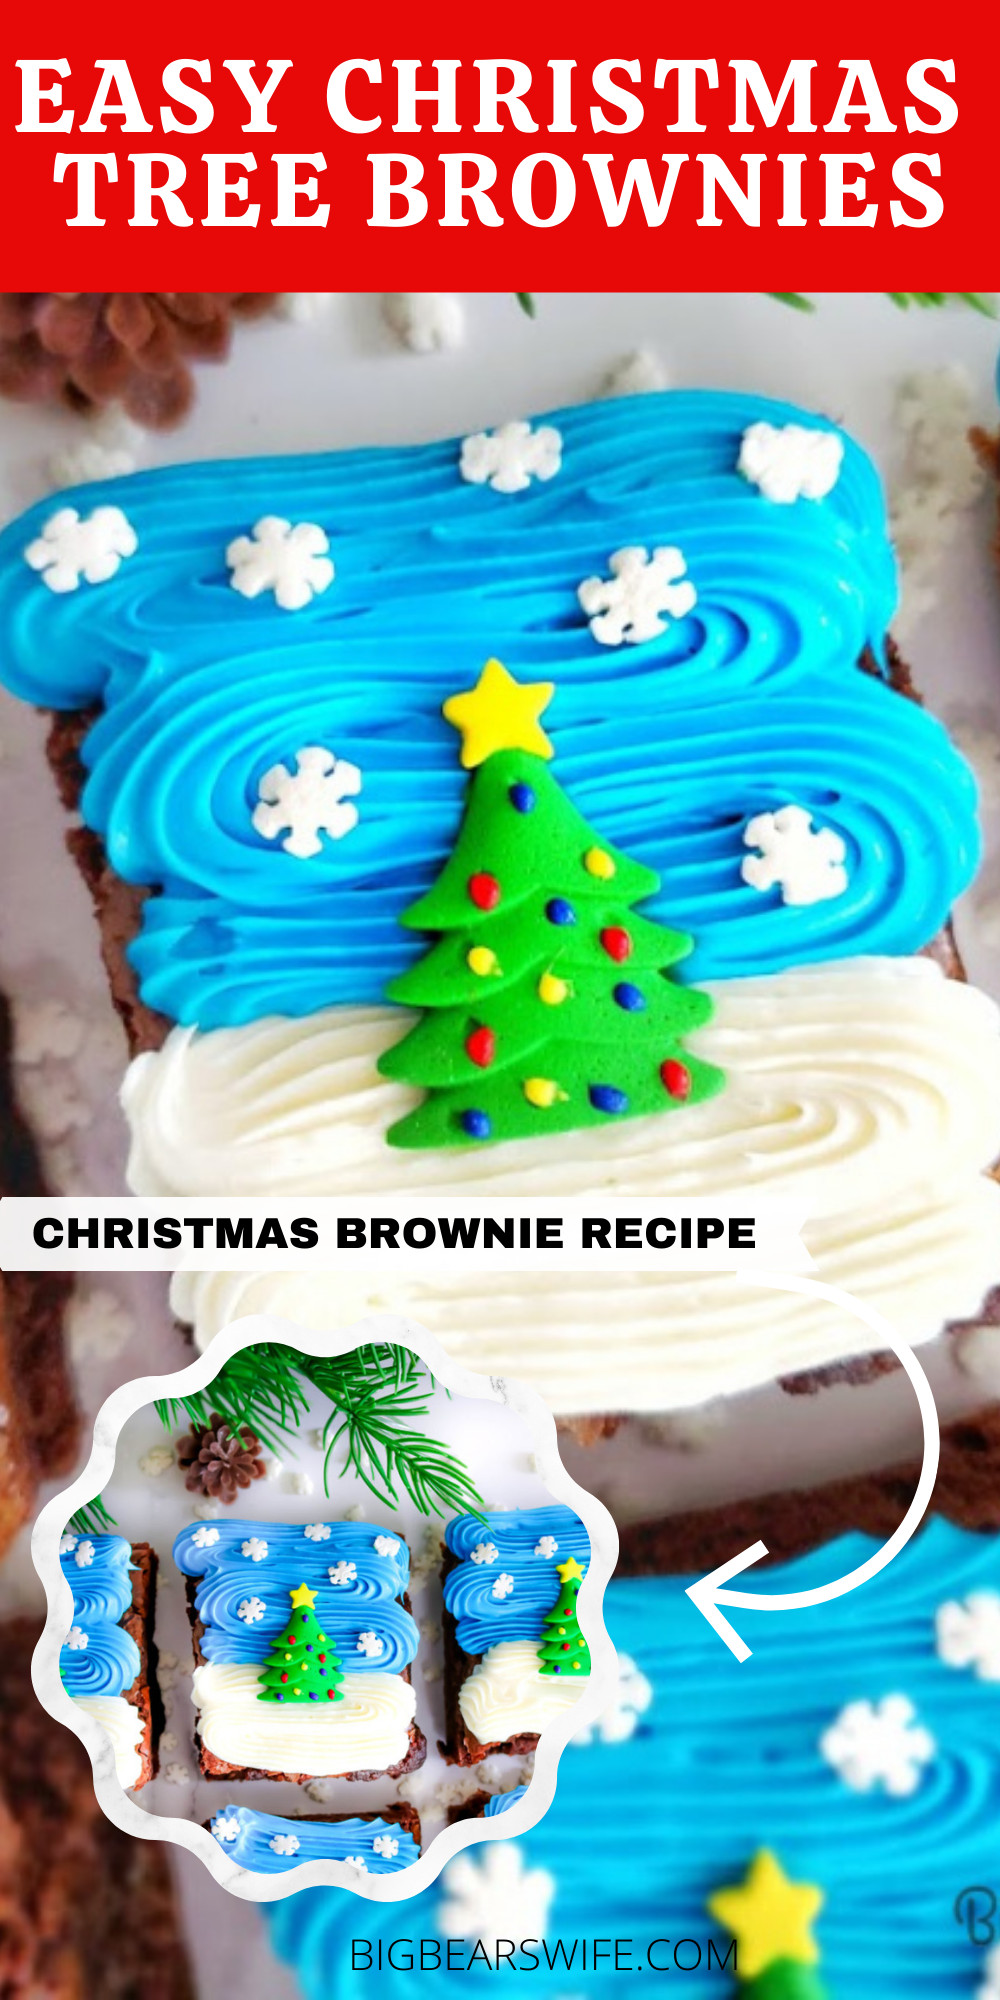 These Easy Christmas Tree Brownies are super festive and simple to make! Use your favorite brownie recipe, my recipe, a boxed mix or brownies from the bakery to create these Christmas treats!